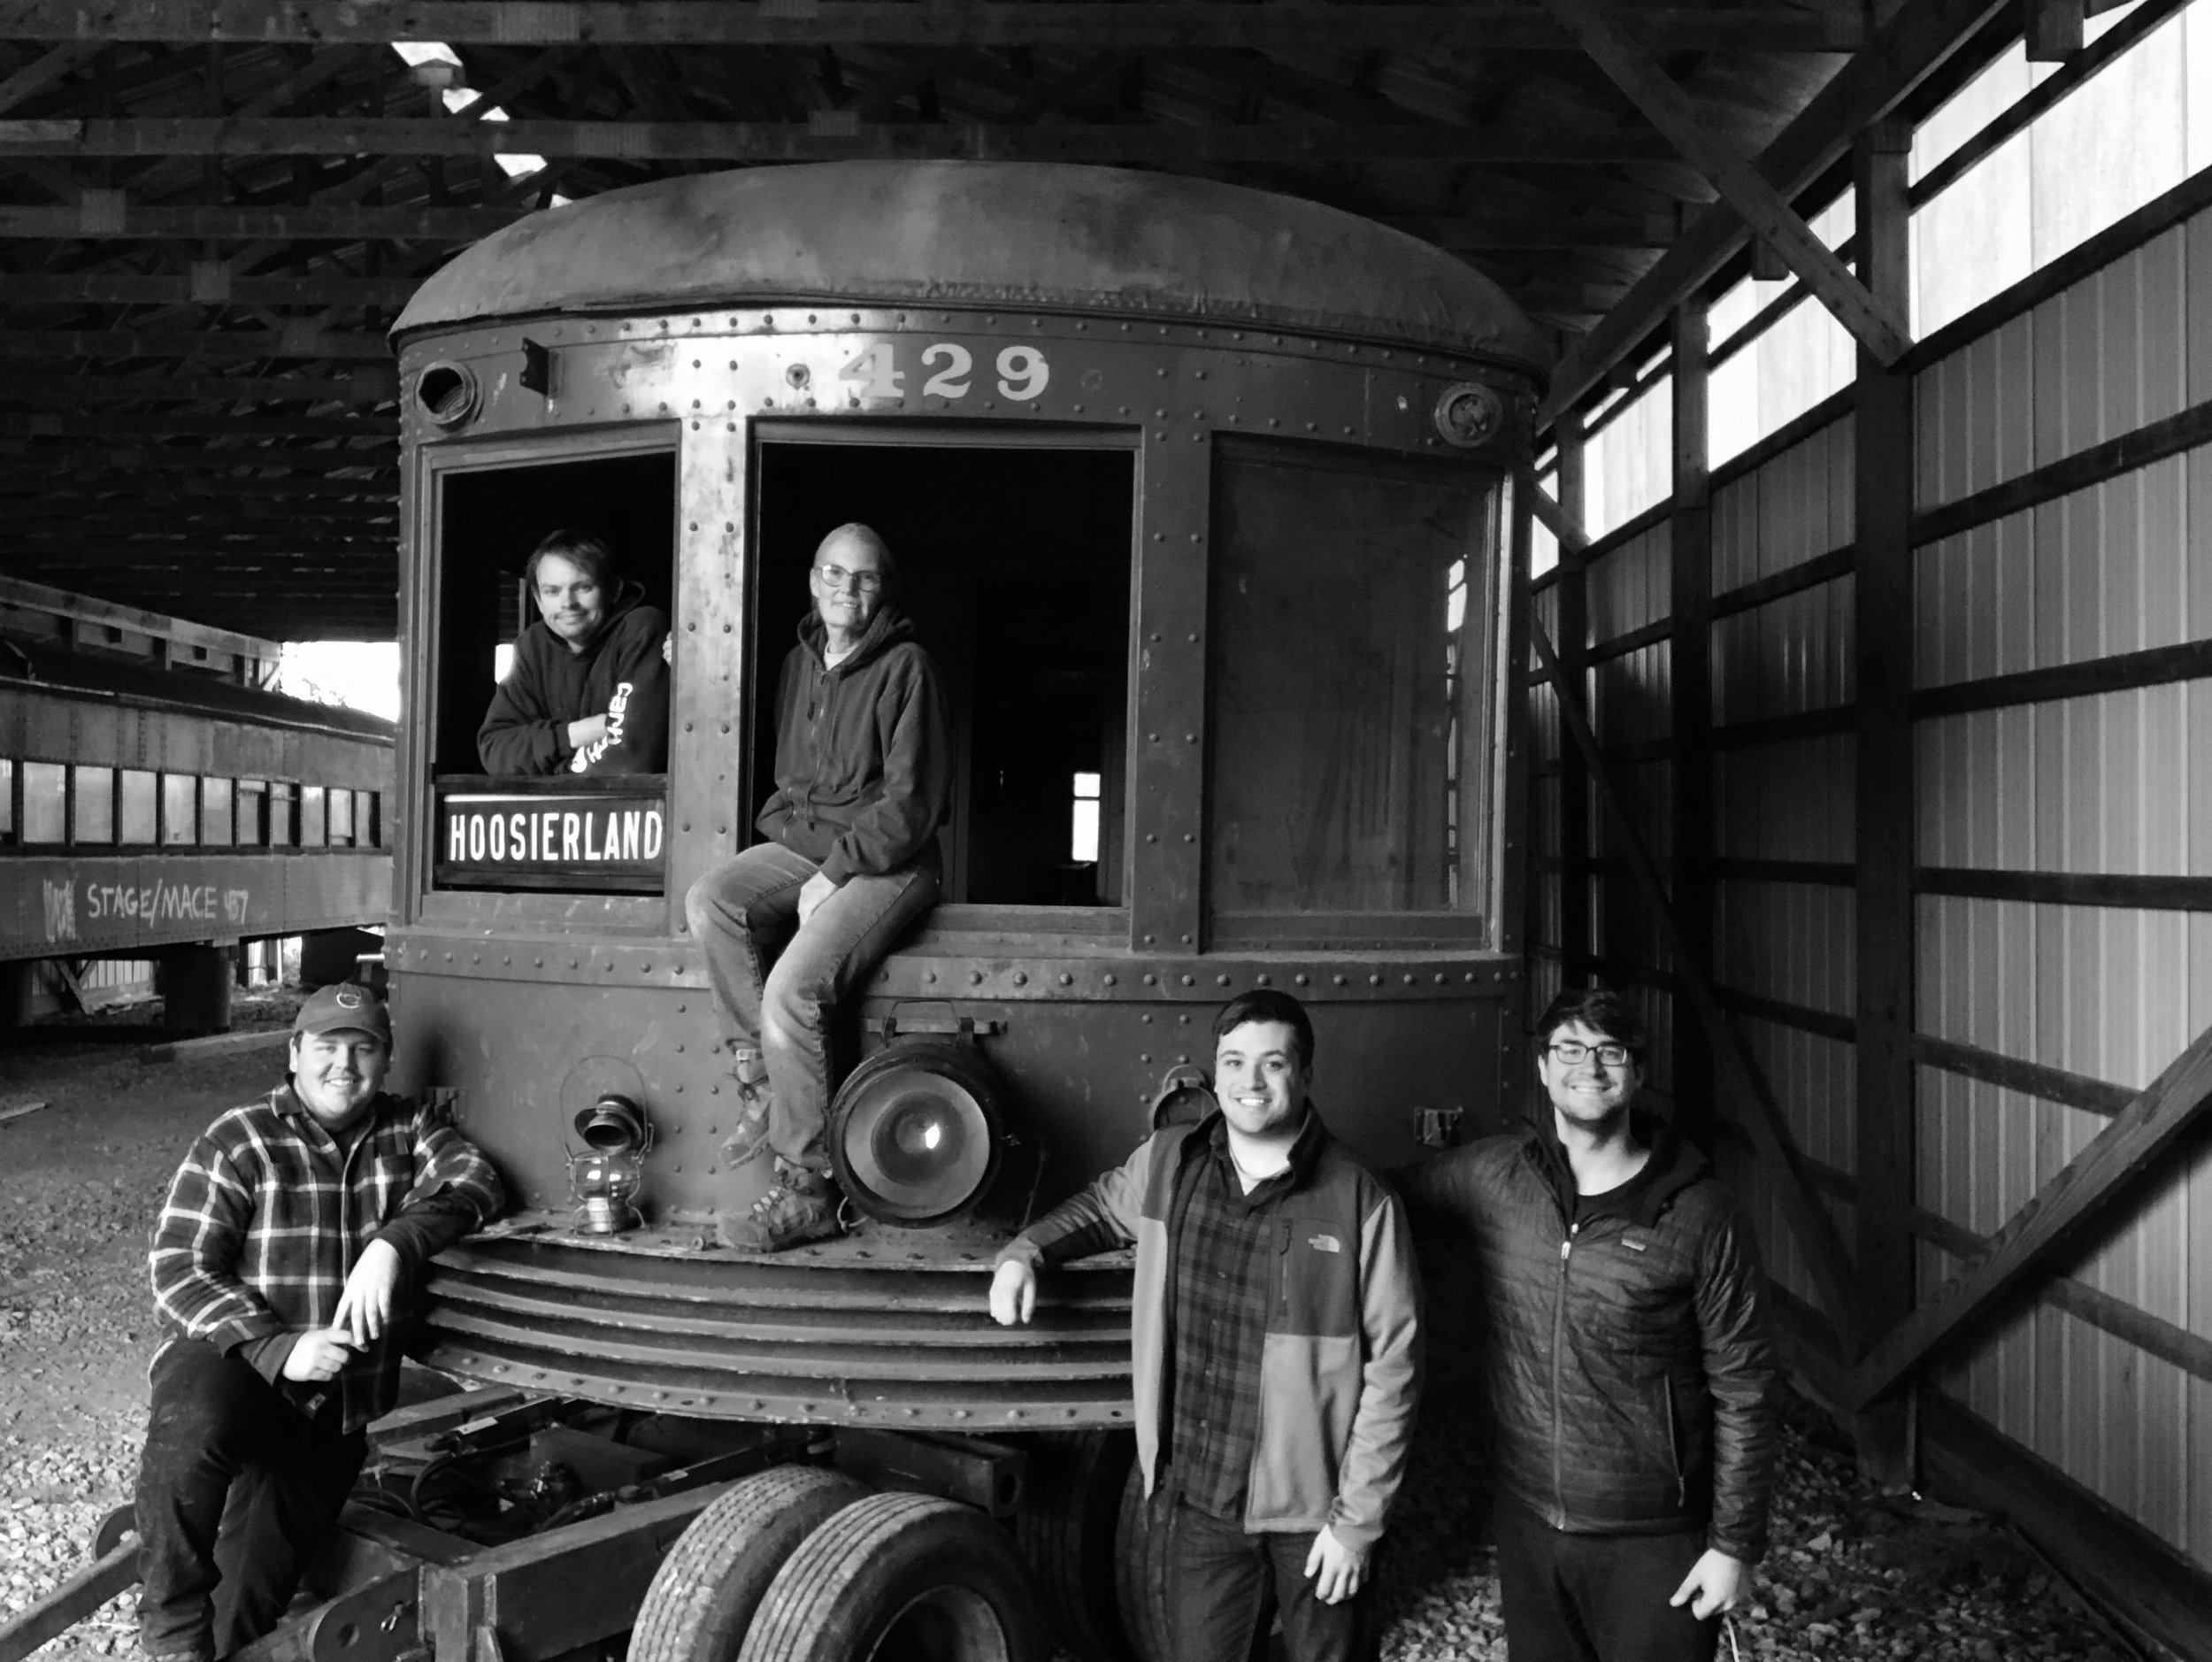 Board of Directors - President, Austin Mace; Vice President, Cameron Nichols; Treasurer, William Hazen; Secretary, Lavonne Stage; Members-at-Large, Jakob Stage, William Whitmer.The Hoosier Heartland Trolley Company seeks to develop the board with community leaders, business professionals, and experts of various nonprofit and museum-related disciplines that are passionate and committed to our plan, mission, vision, and core values.The board's current professional expertise is comprised of emerging technology/entrepreneurship, marketing/advertising, transportation, sales, agricultural consulting, and education.